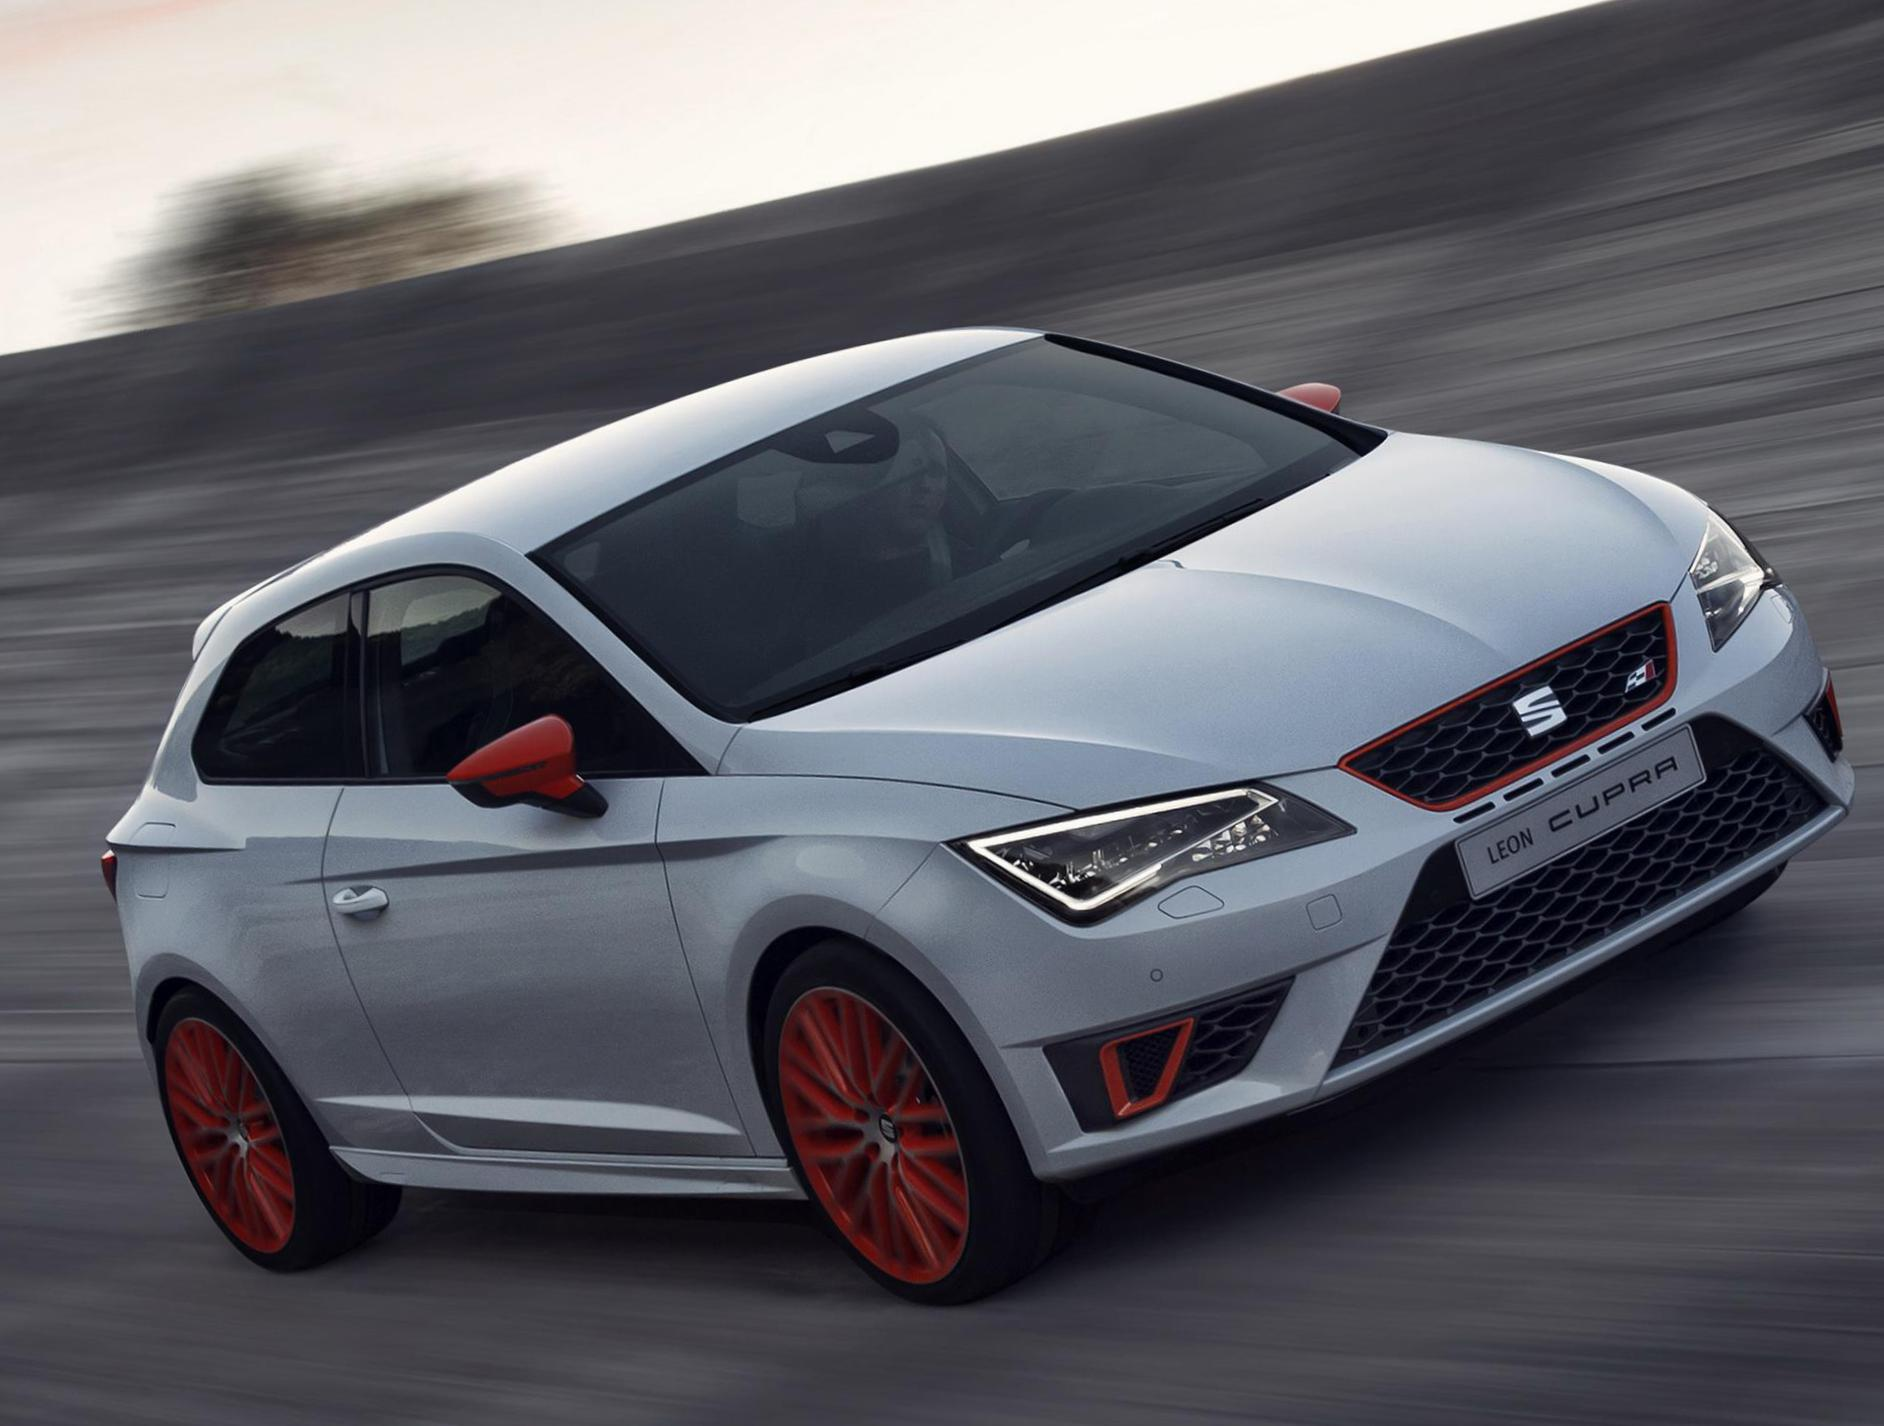 seat leon sc cupra photos and specs photo seat leon sc cupra how mach and 26 perfect photos of. Black Bedroom Furniture Sets. Home Design Ideas